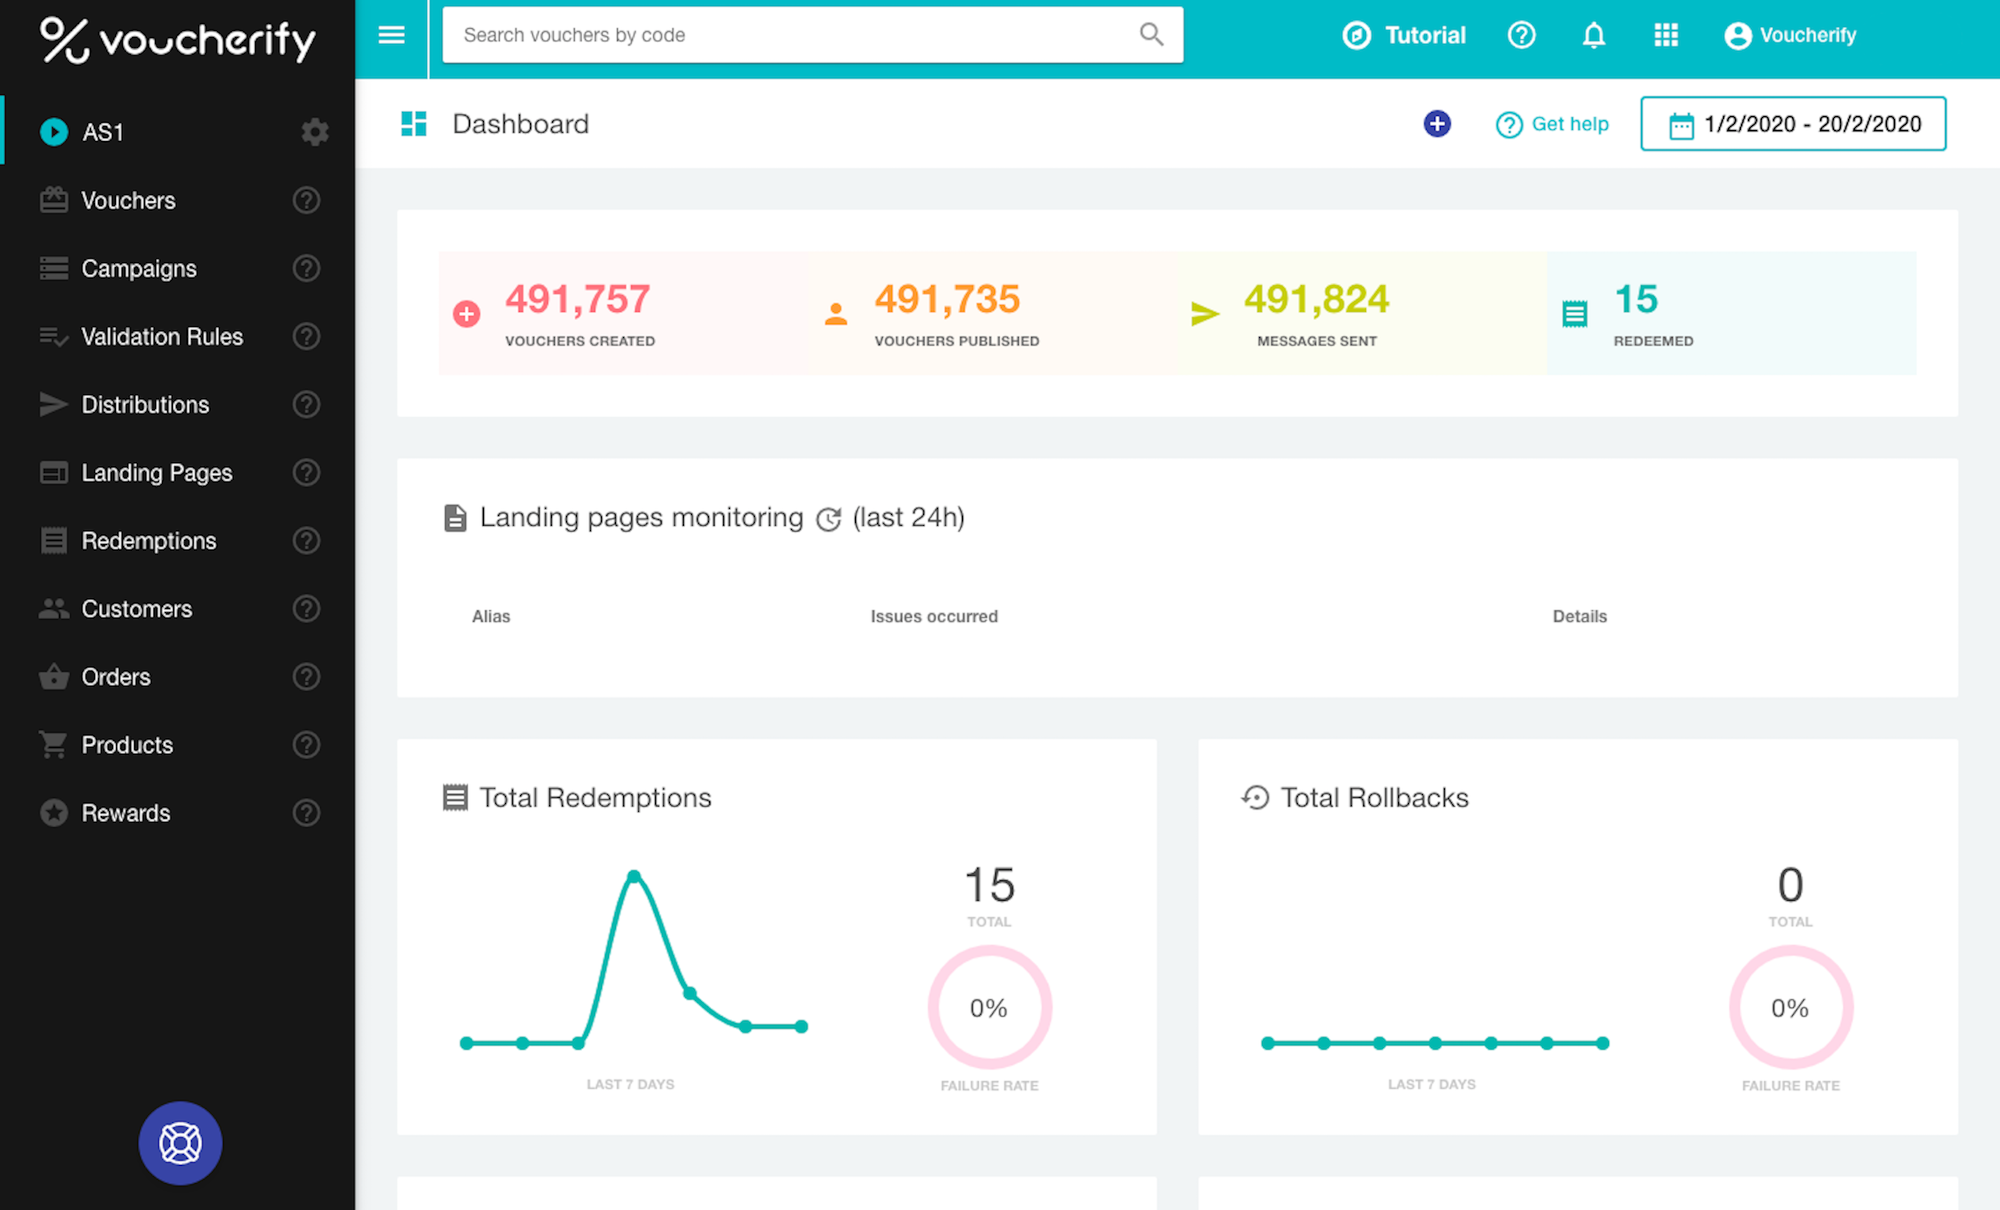 With Voucherify dashboard, marketers can keep an eye on promotions performance with a fine-grained control over every campaign.